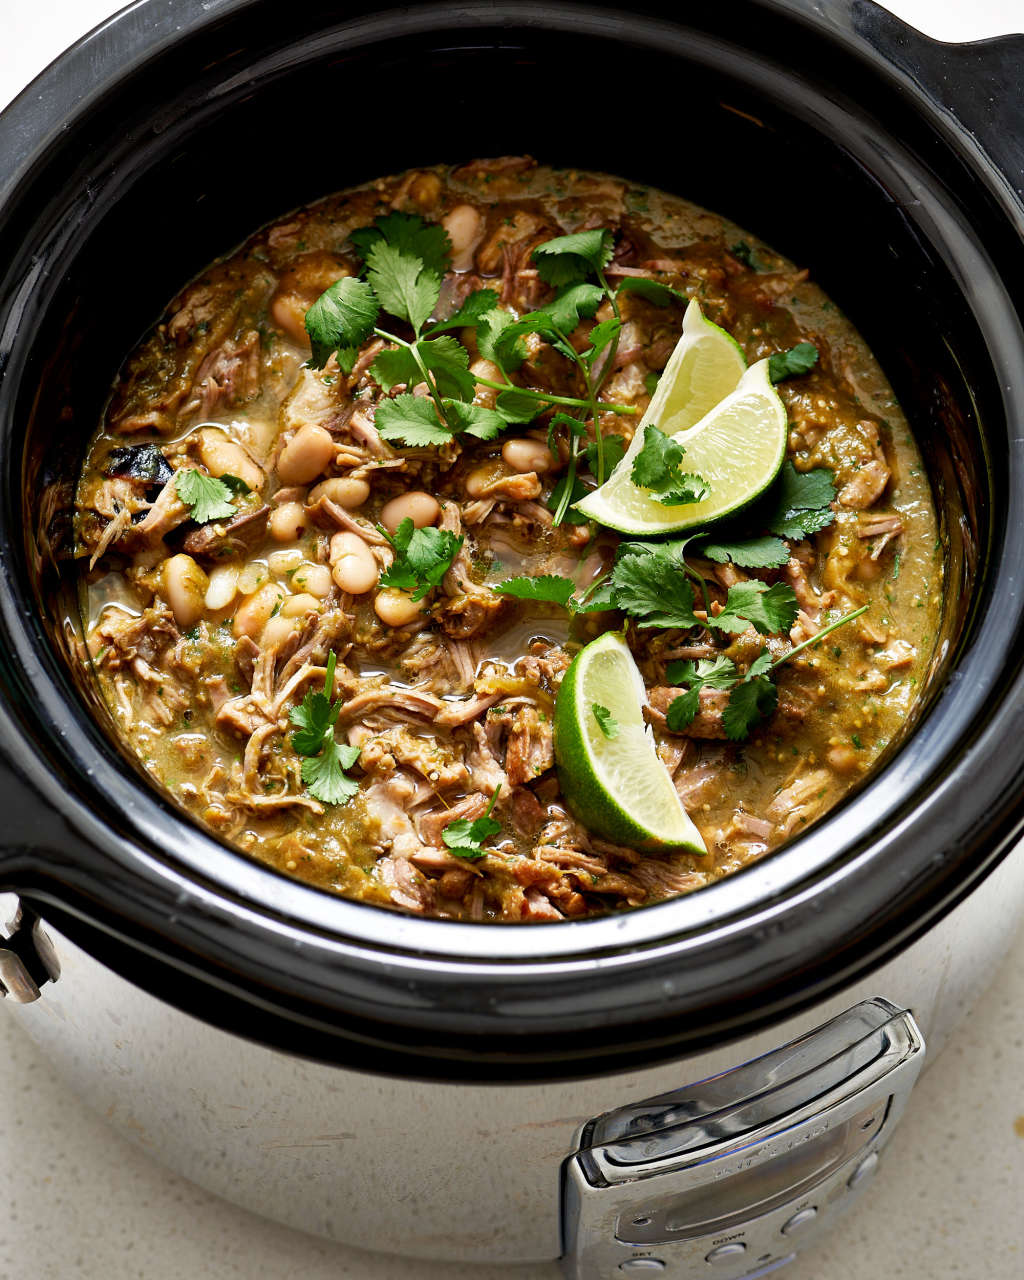 Snow Storm Headed Your Way? Slow Cooker Chili Verde Can Help